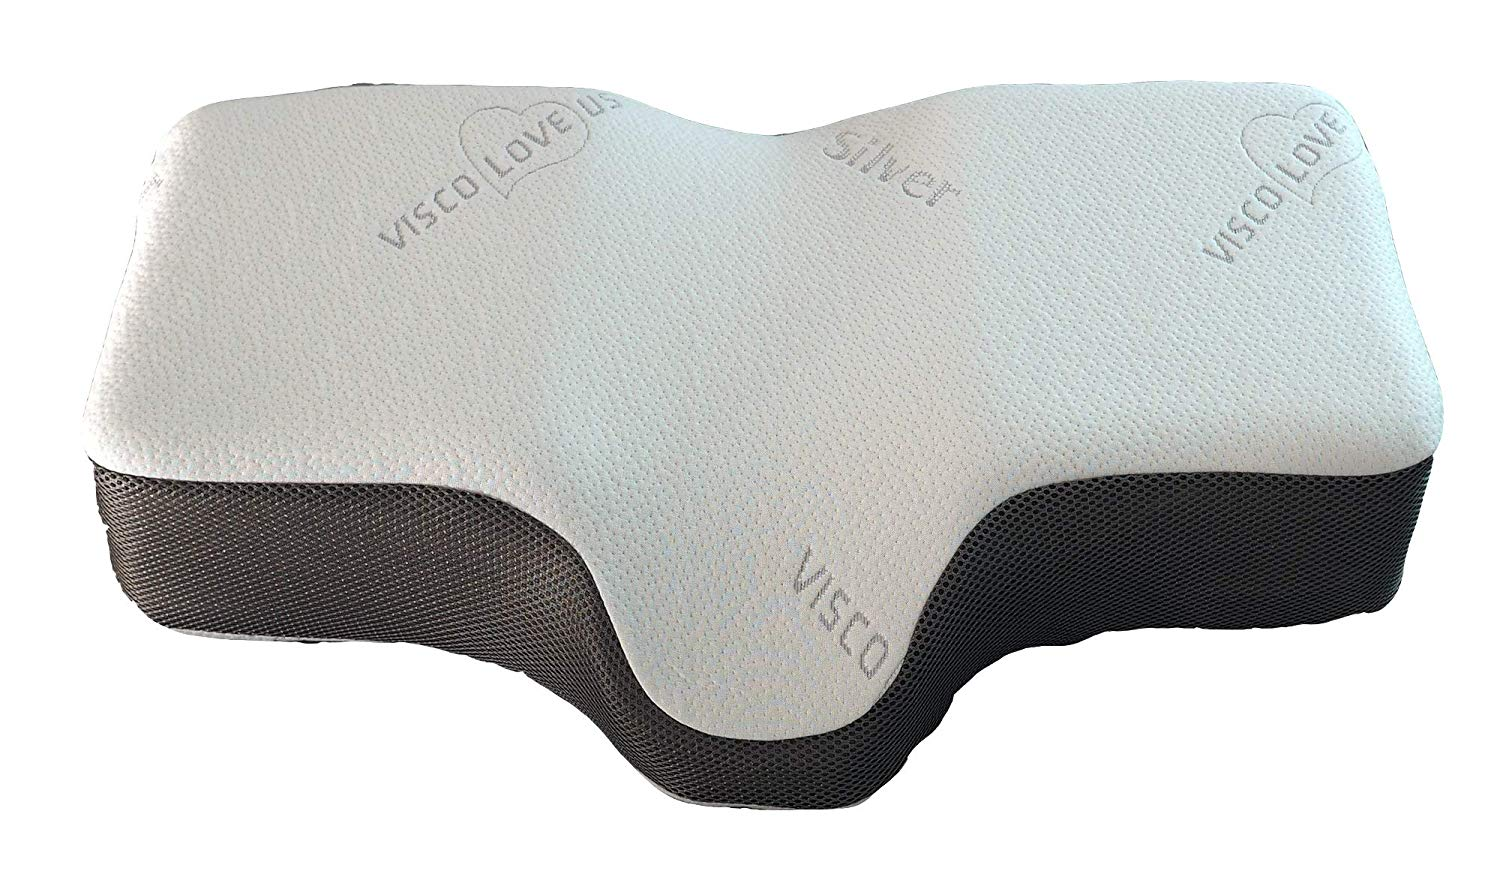 6 Best Pillows For Sleep Apnea Reviewed In Detail May 2020